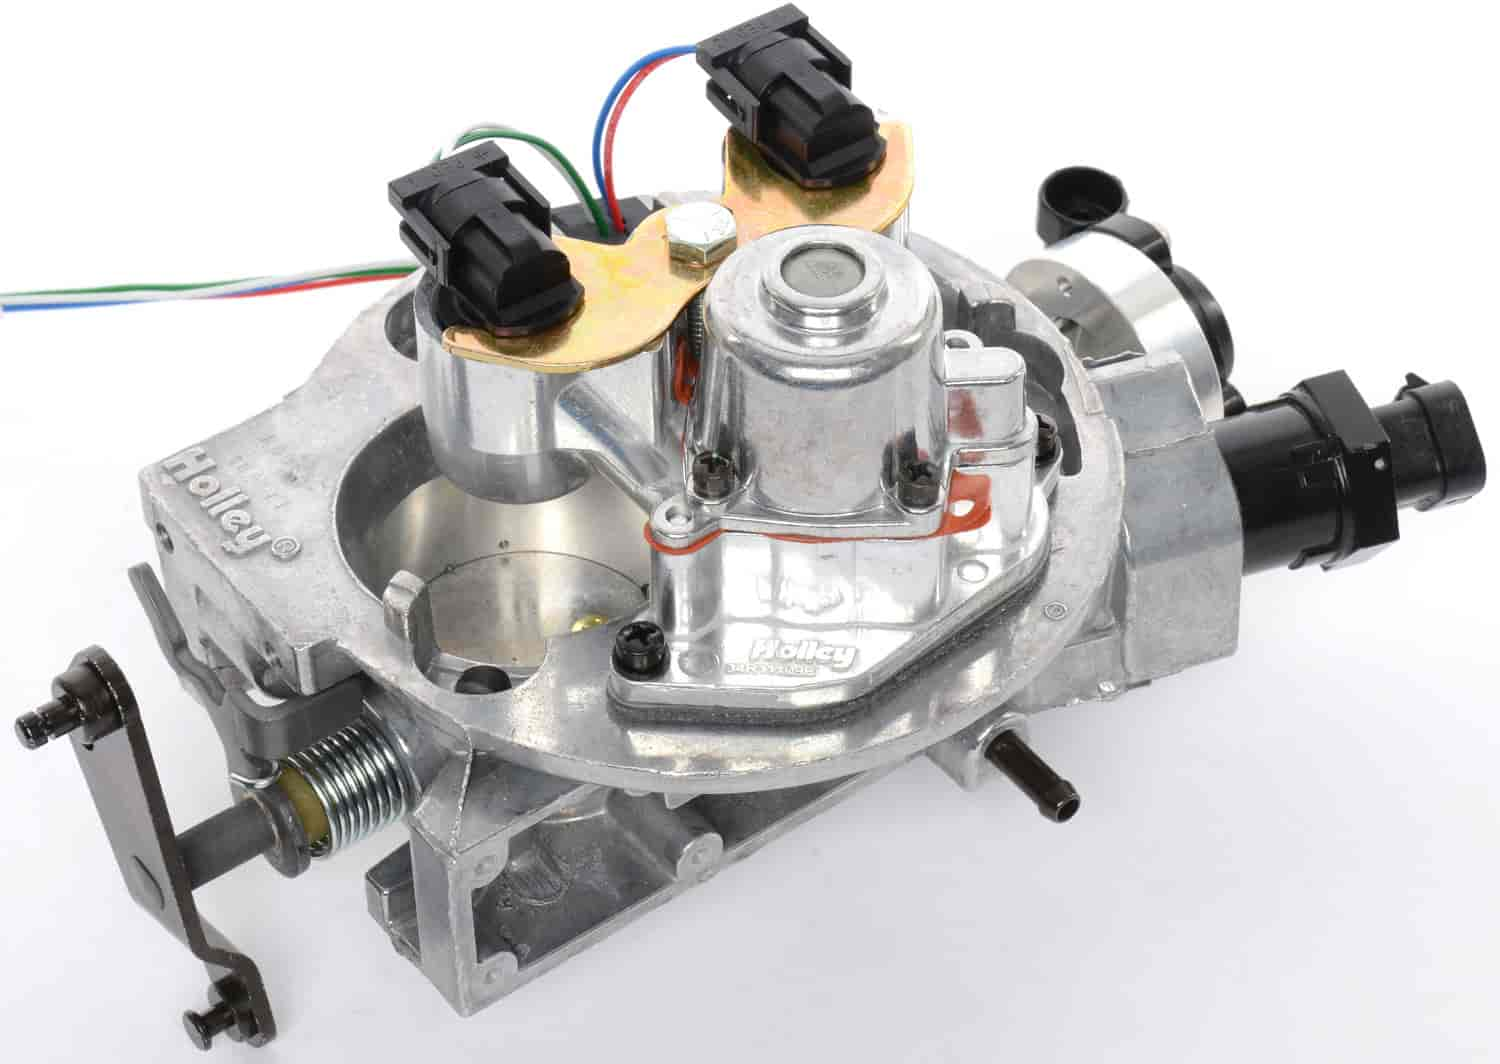 Gm Fuel Pump Wiring Diagram